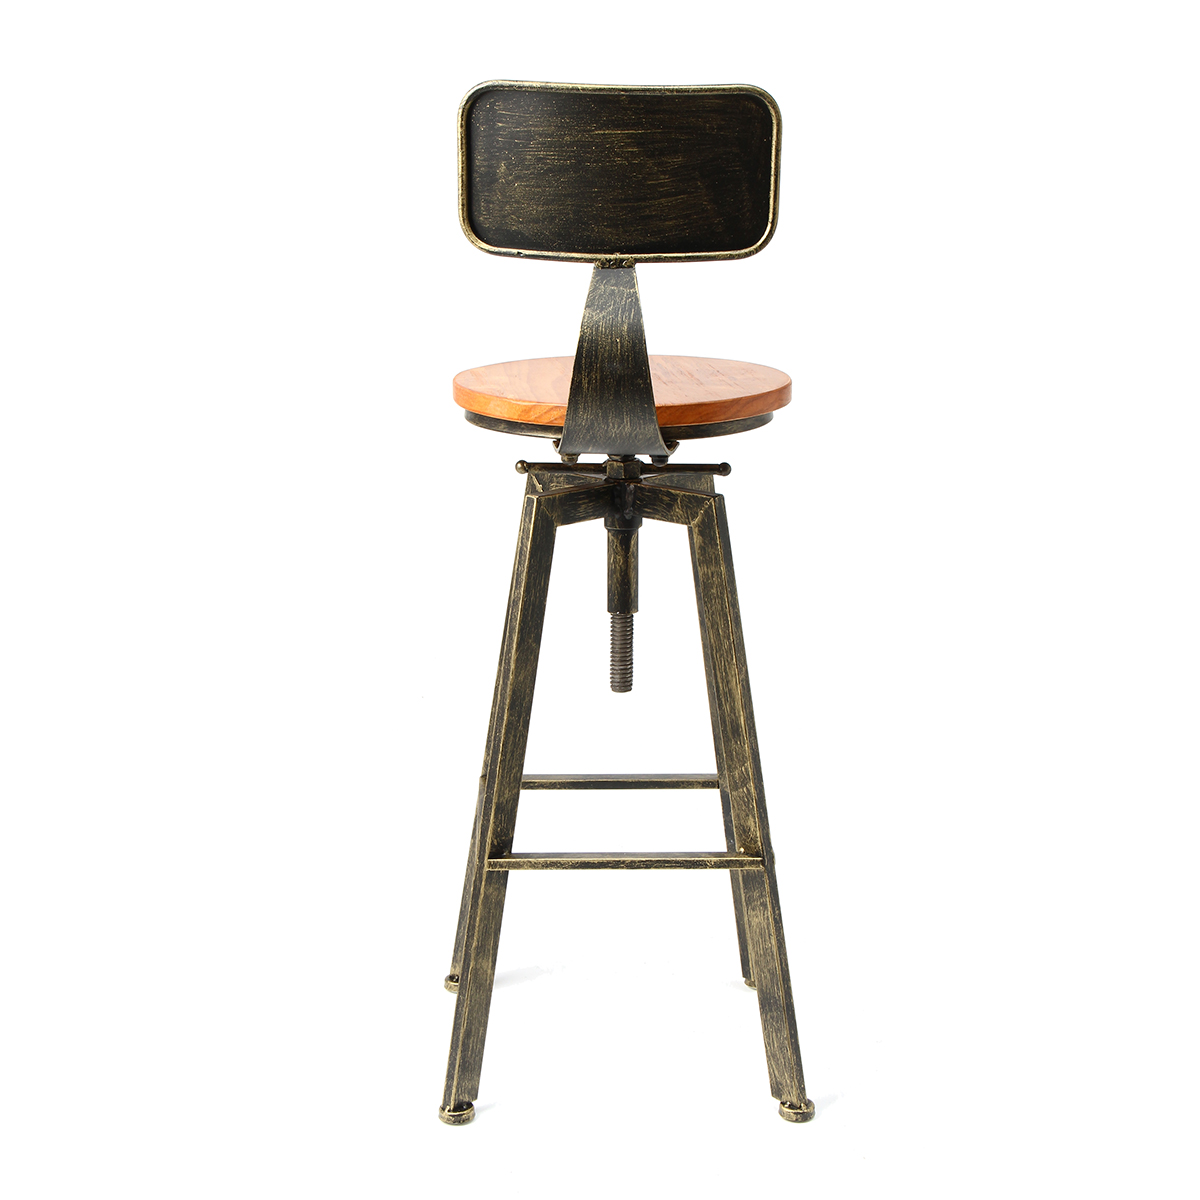 3 Colors Retro Industrial Bar Chair Stool Adjustable Wood Iron Stool 360 Degree Rotating Counter Lift High Chair Home Bar Decor3 Colors Retro Industrial Bar Chair Stool Adjustable Wood Iron Stool 360 Degree Rotating Counter Lift High Chair Home Bar Decor